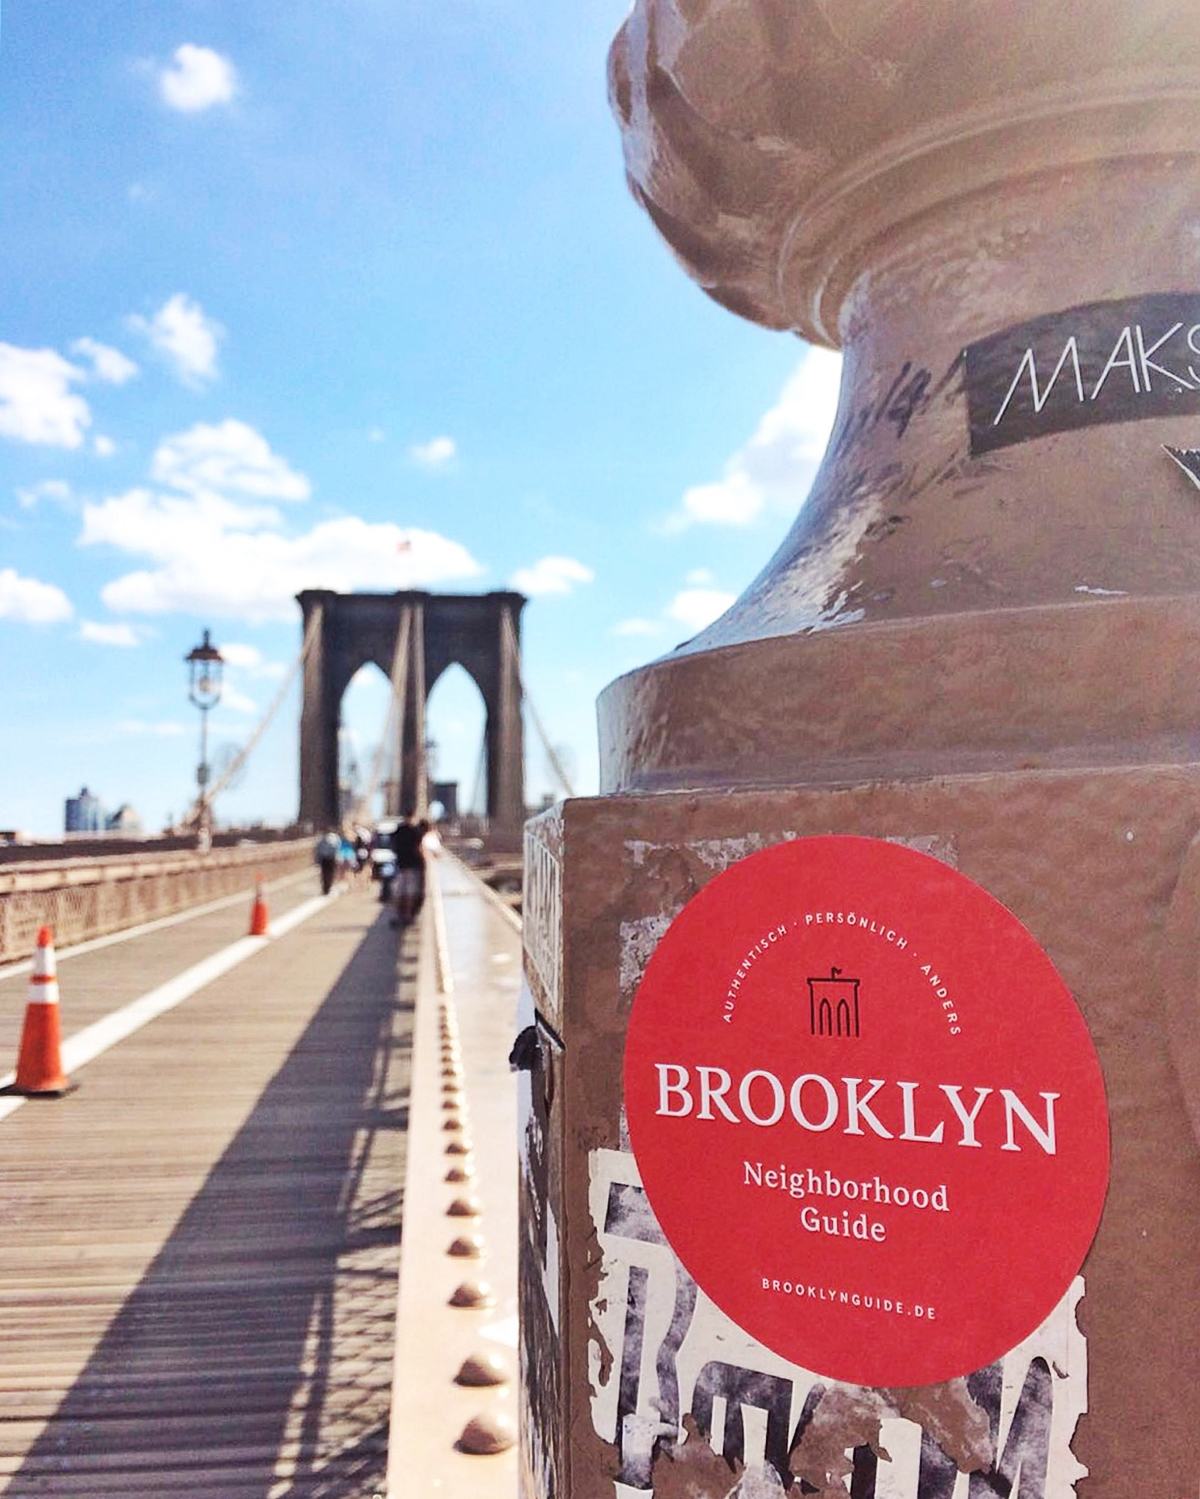 Travel - New York City Trip | Brooklyn Tipps der Reiseführer-Autorin des Brookly Neighborhood Guide Ina Bohse | luzia pimpinella